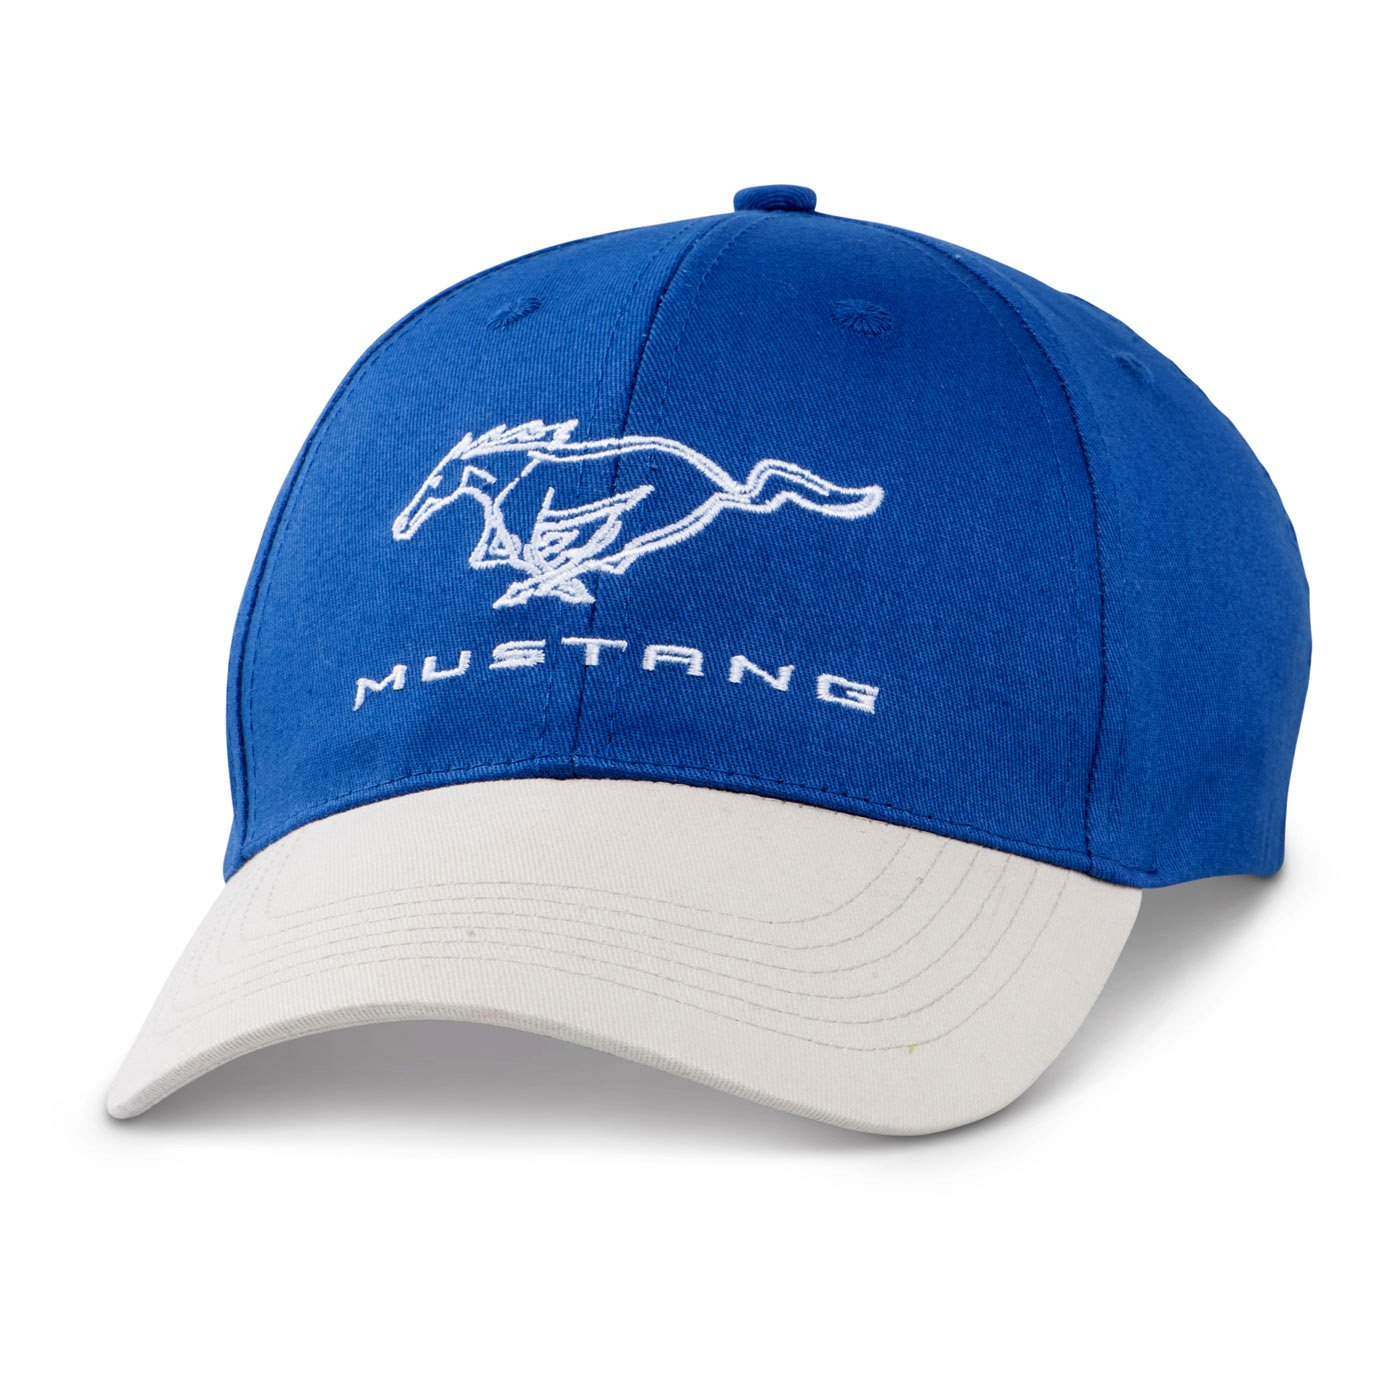 06c95a72a Cheap Racing Hat, find Racing Hat deals on line at Alibaba.com